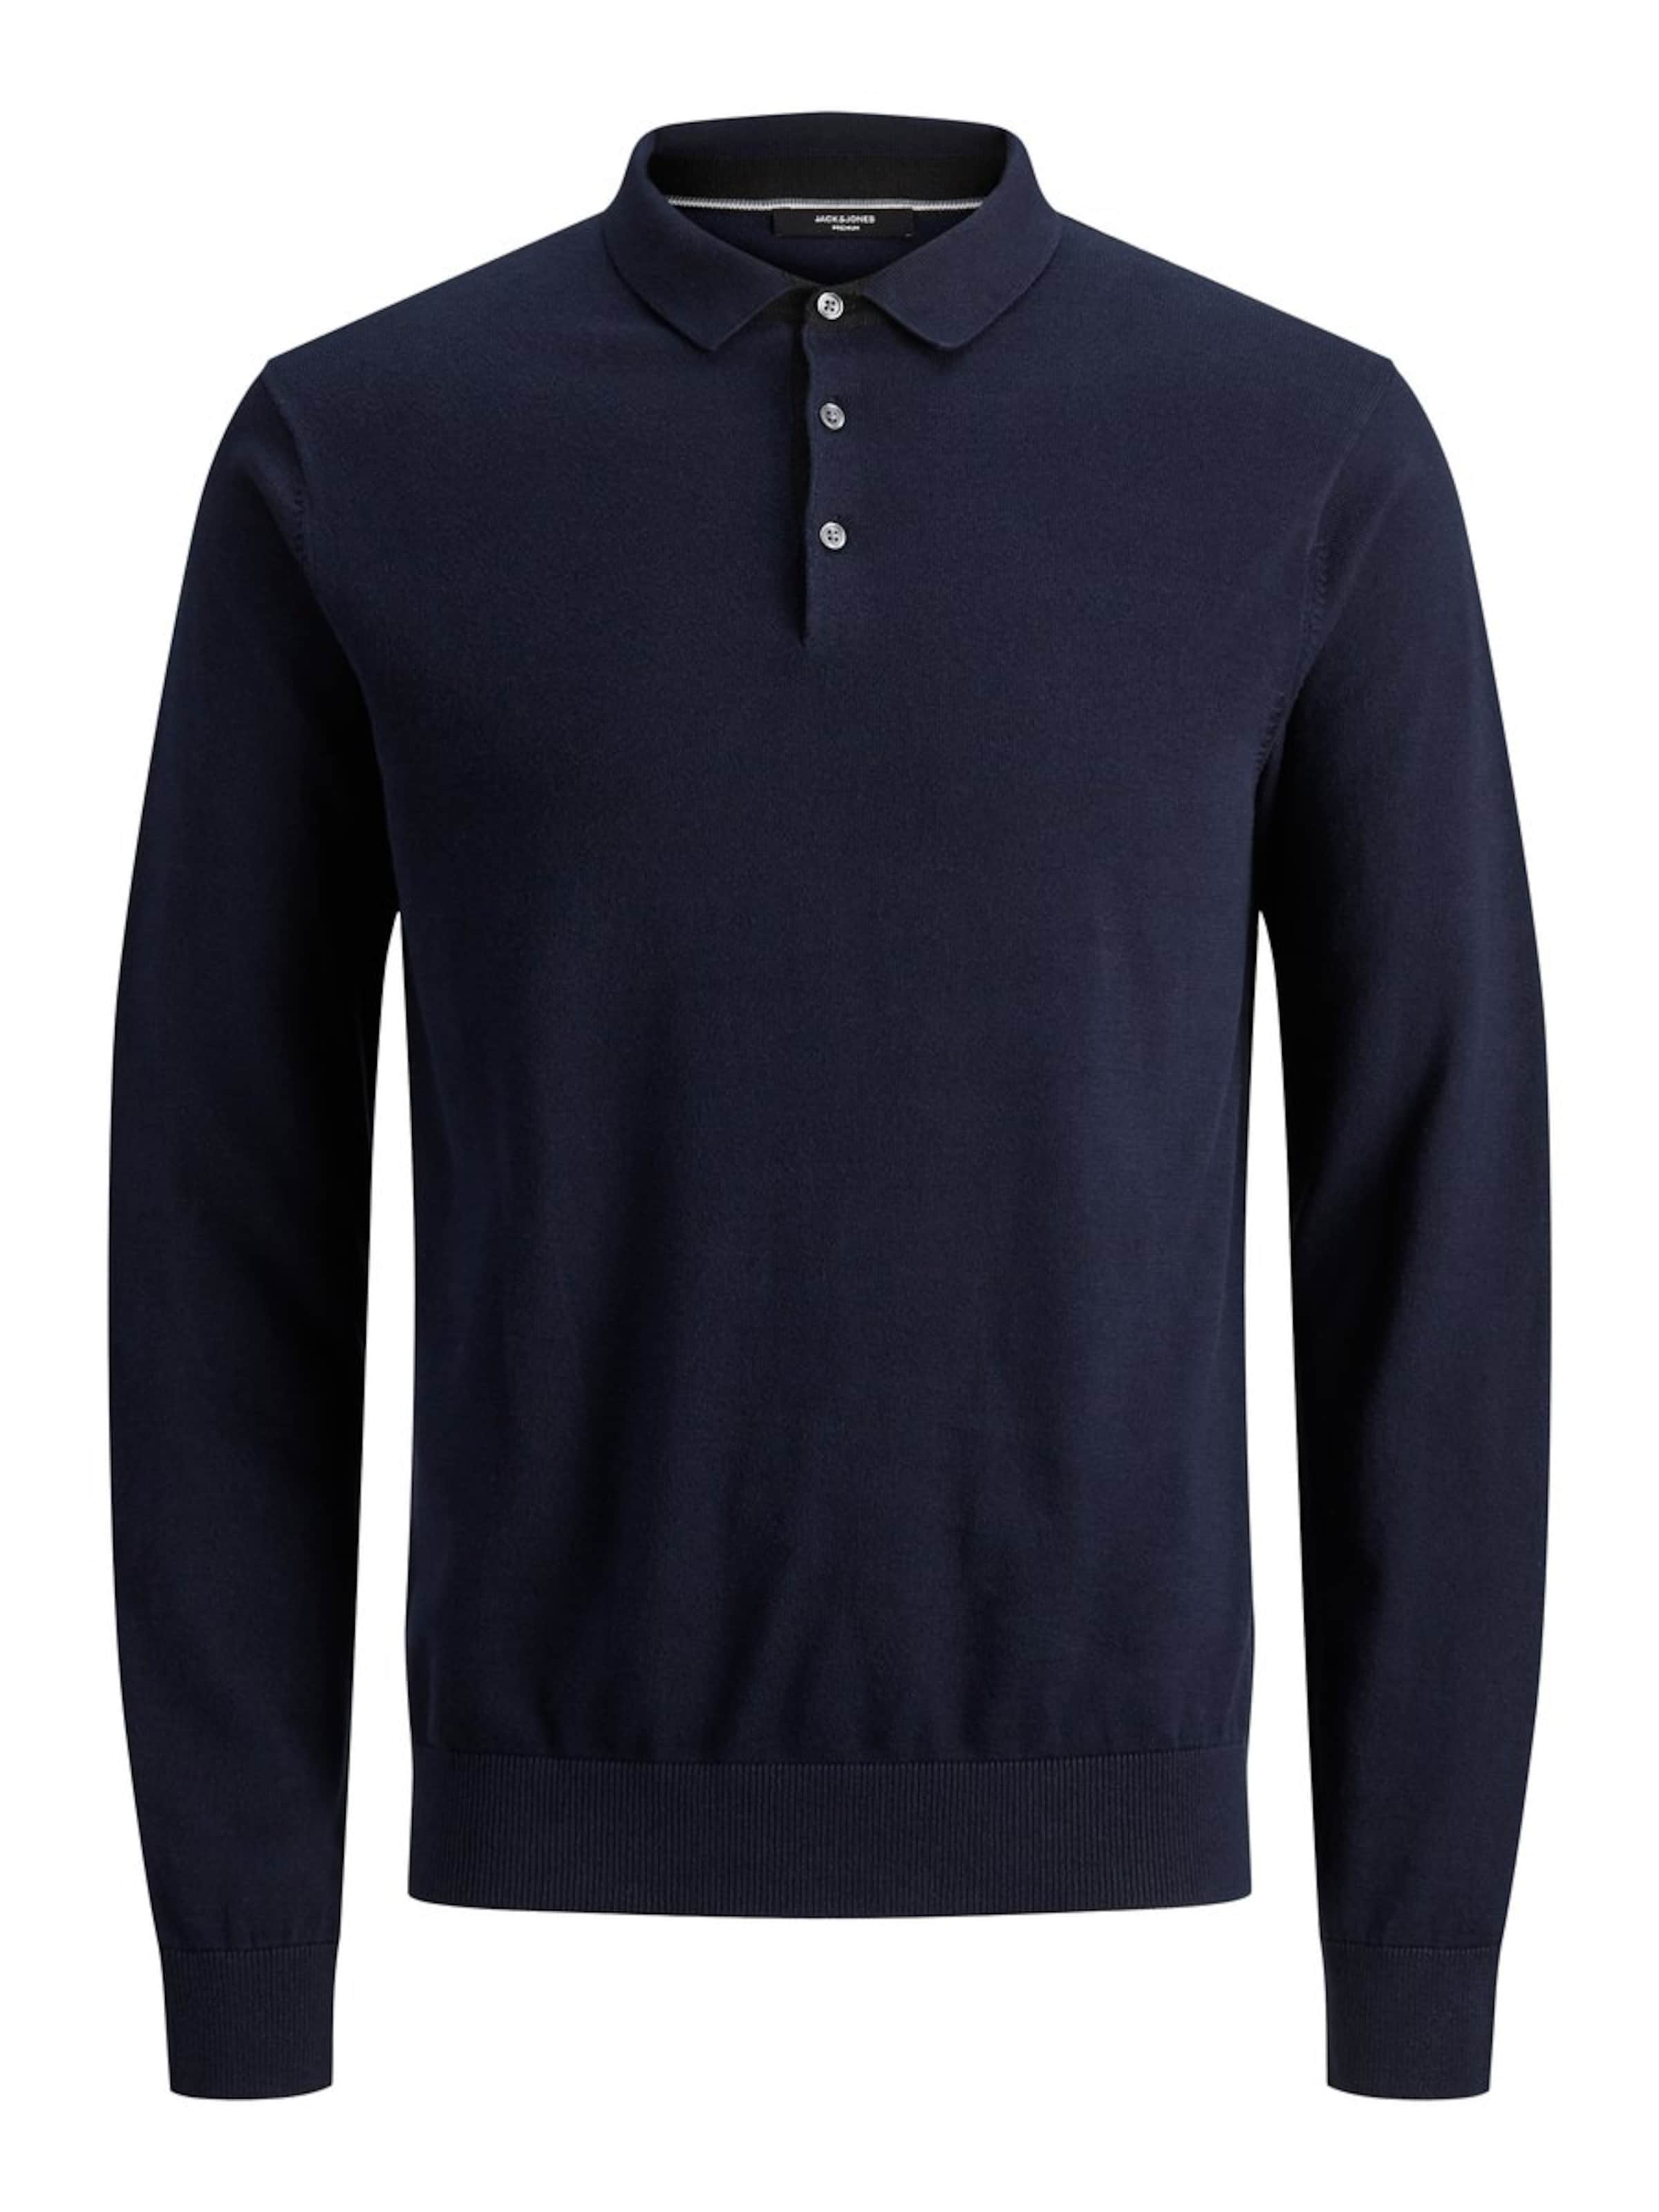 In Dunkelblau Langarm Poloshirt Jackamp; Jones cL4RqAS35j